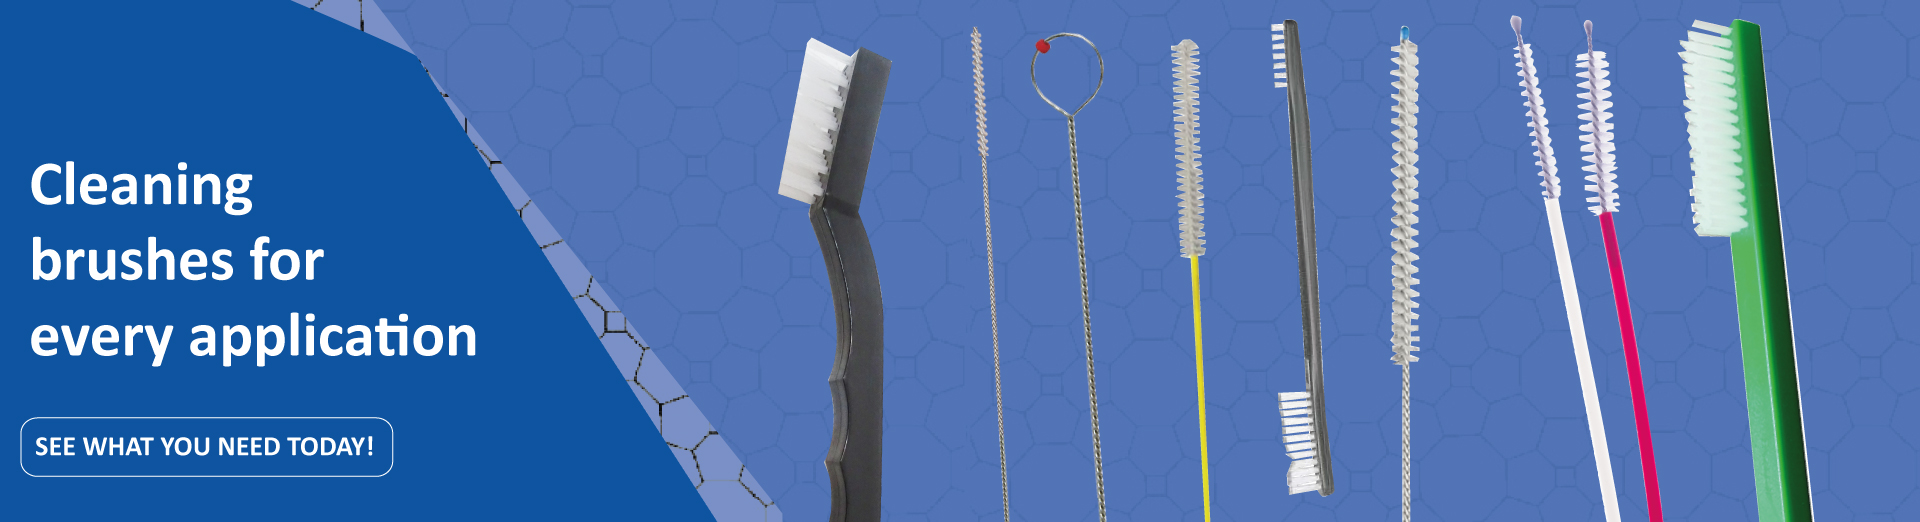 nsc-slider-CLEANING-BRUSHES-CSSD